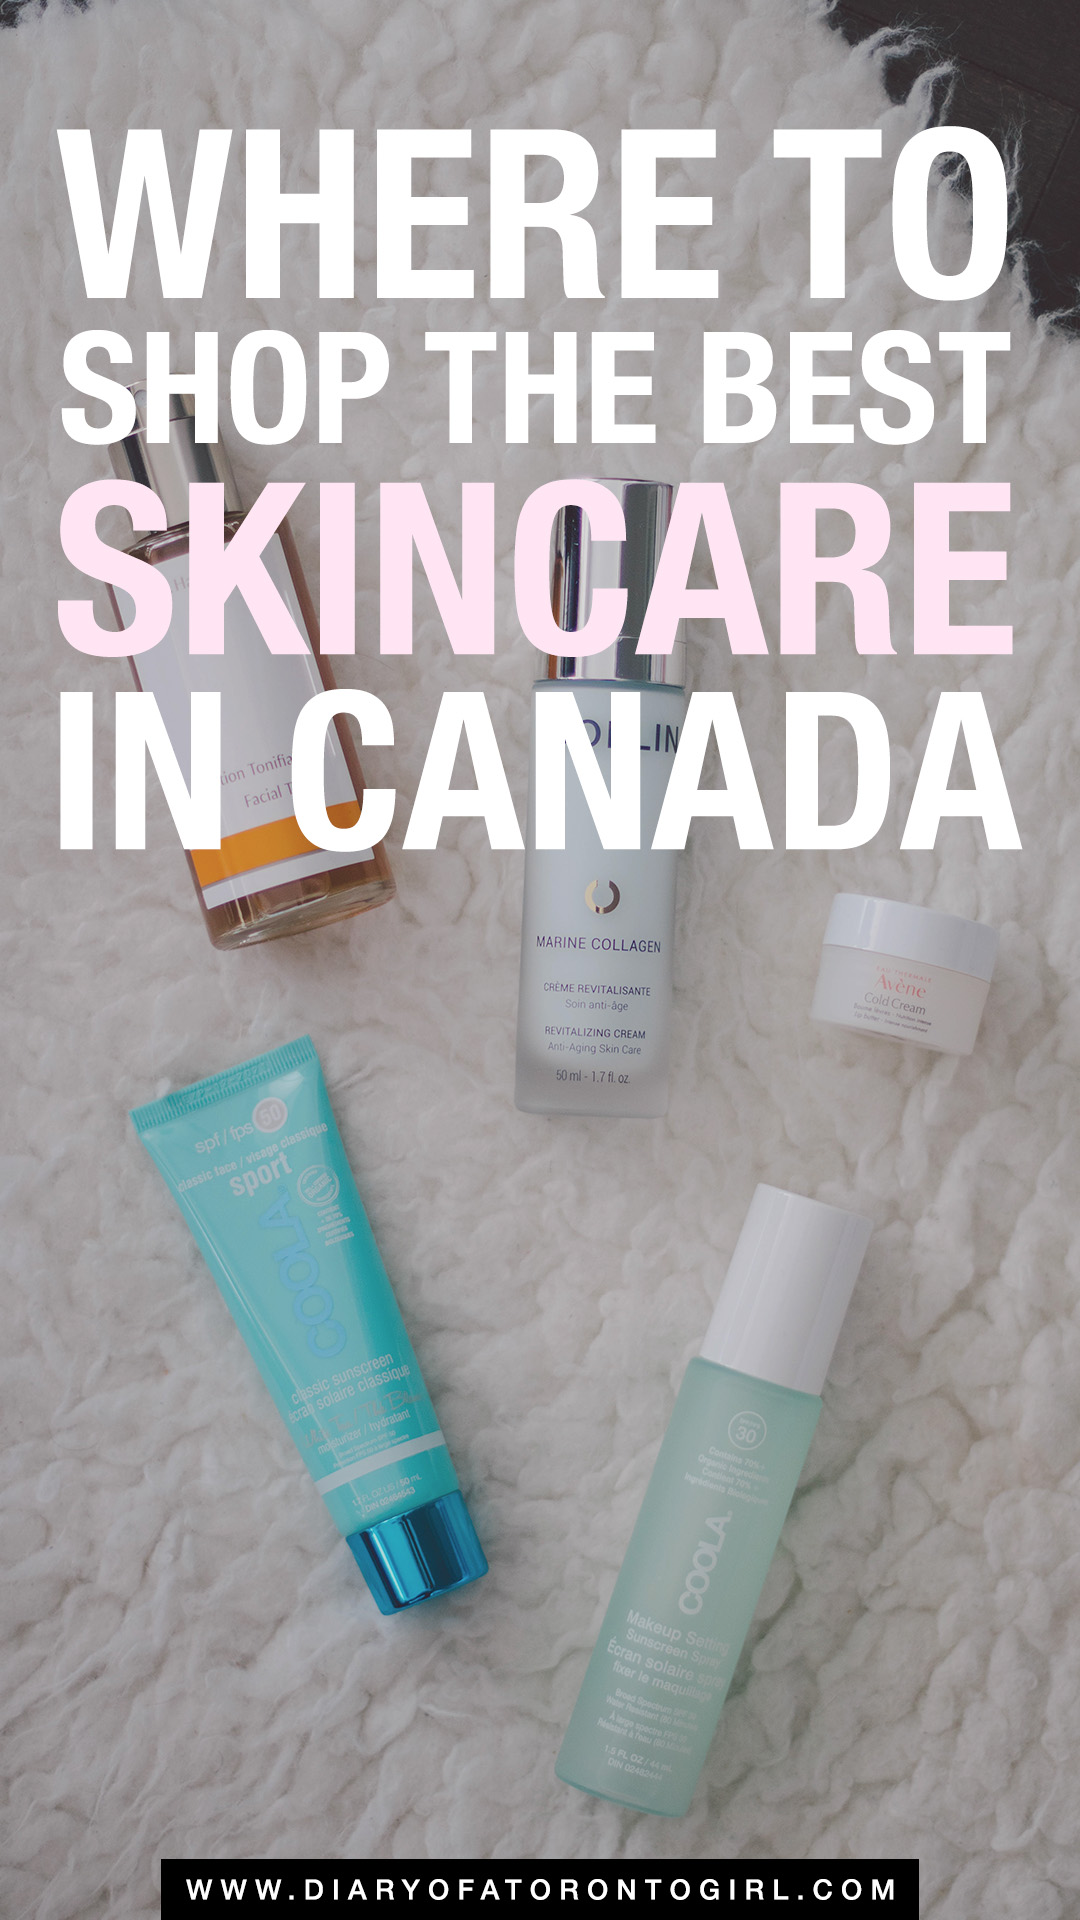 Beautysense review - where to shop the best skincare in Canada